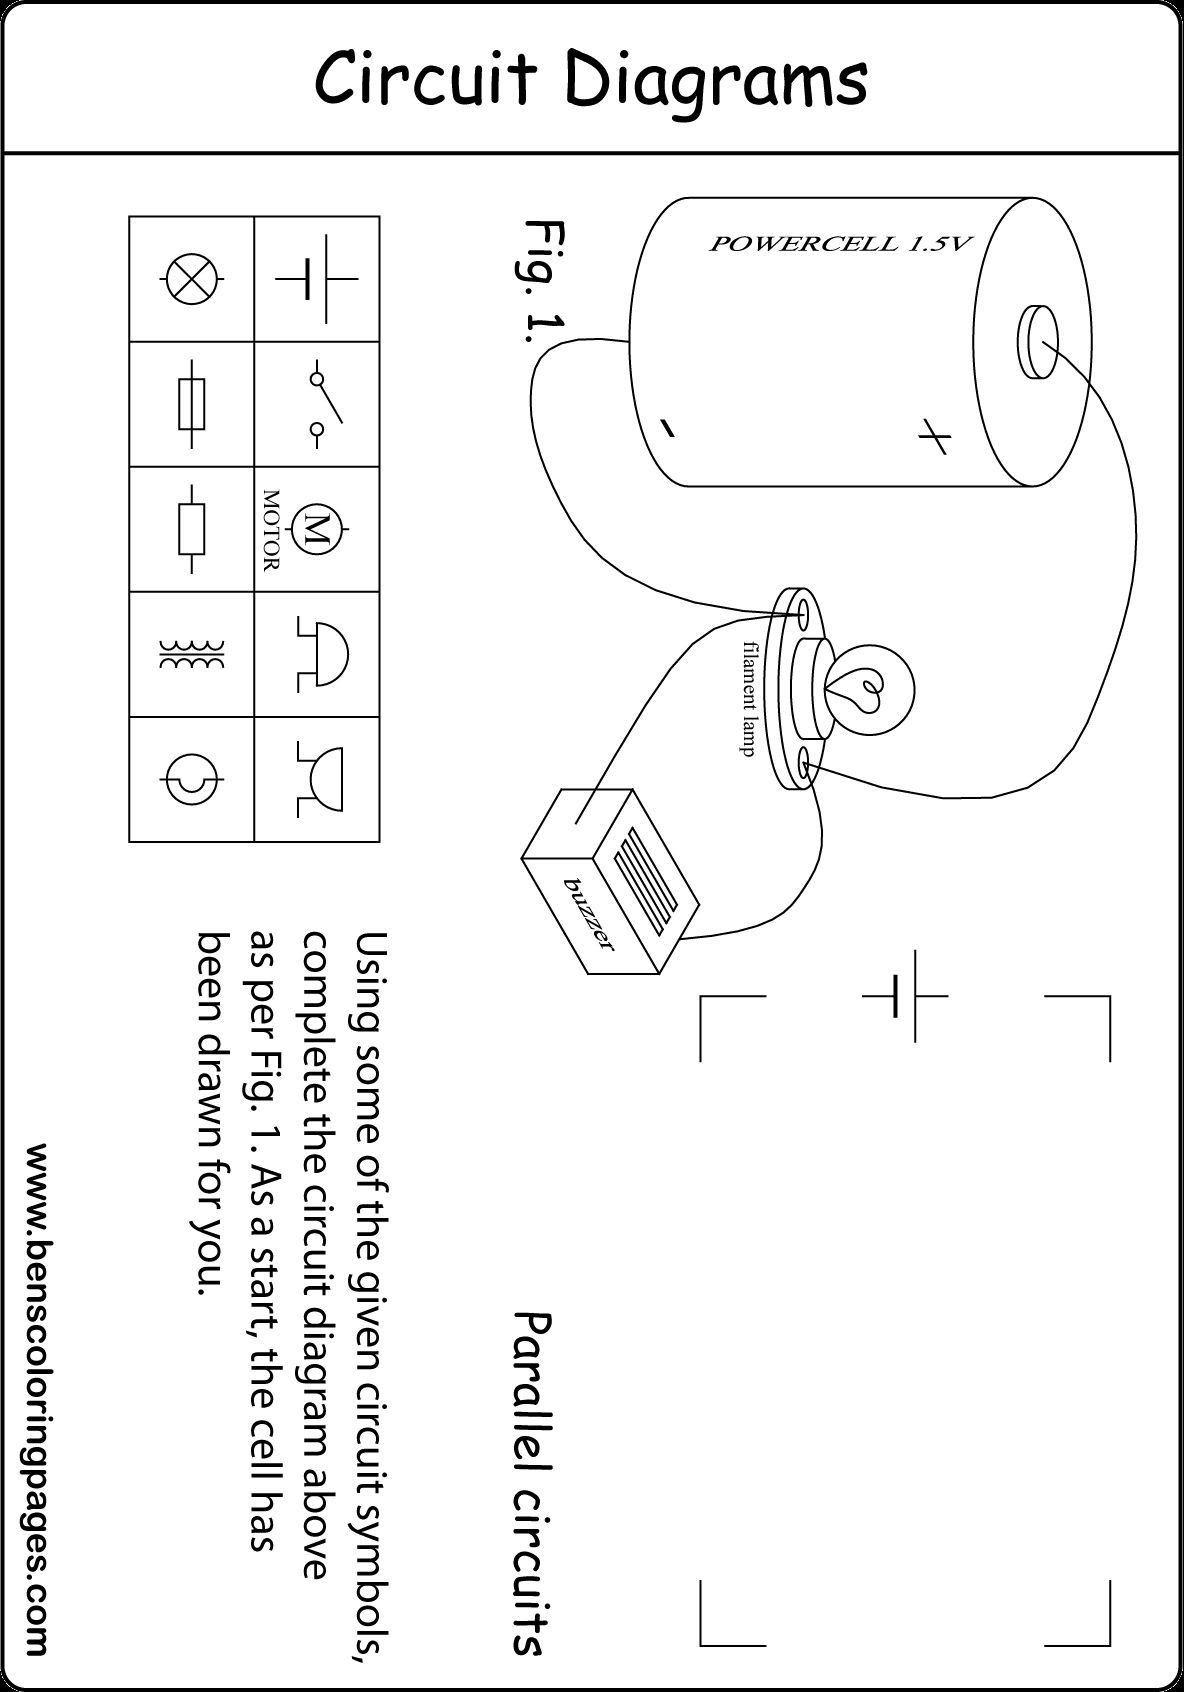 PeriodicInspirational Circuits and Symbols Worksheet